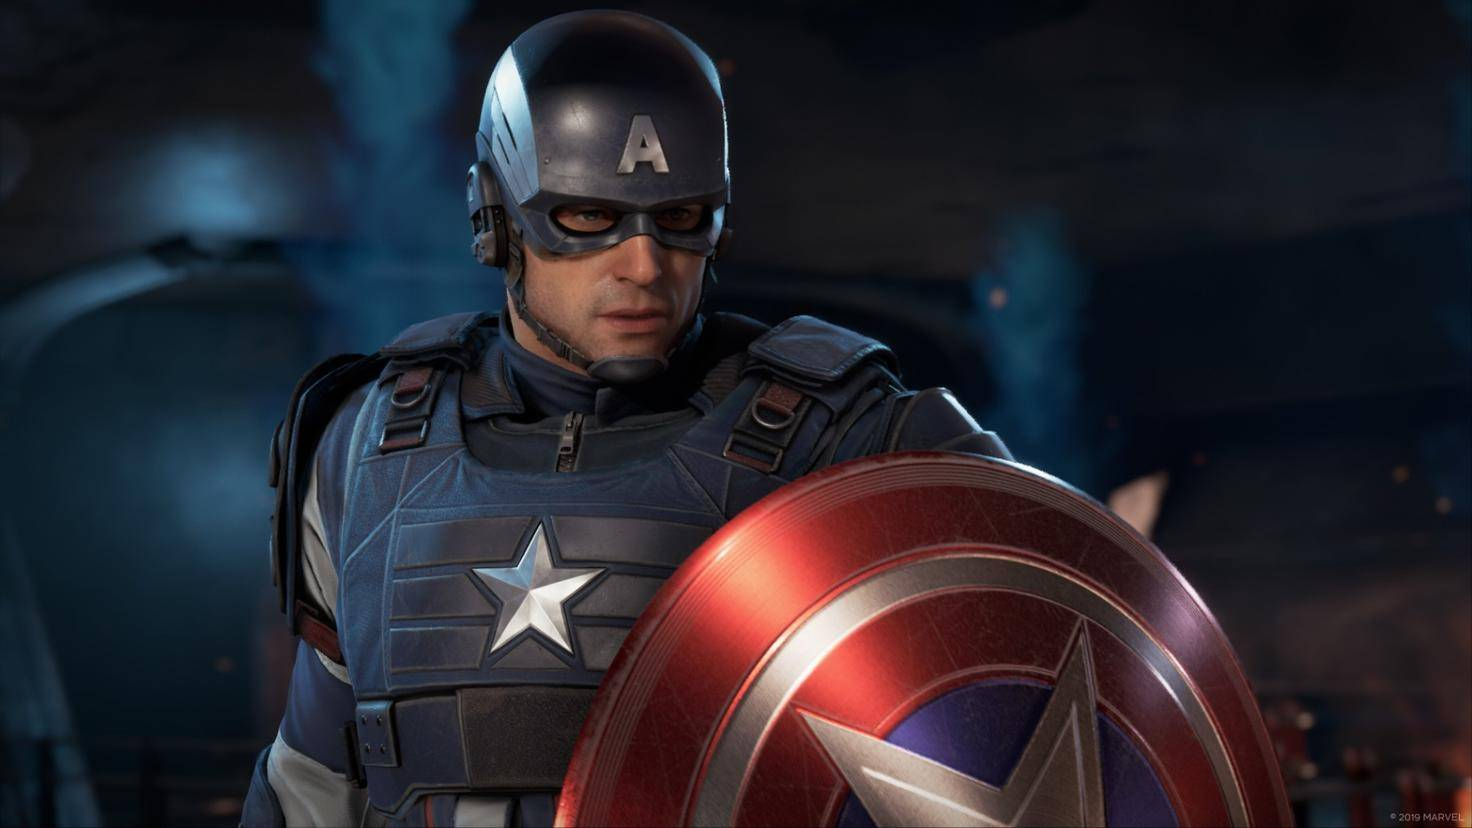 marvels-avengers-captain-america-screenshot